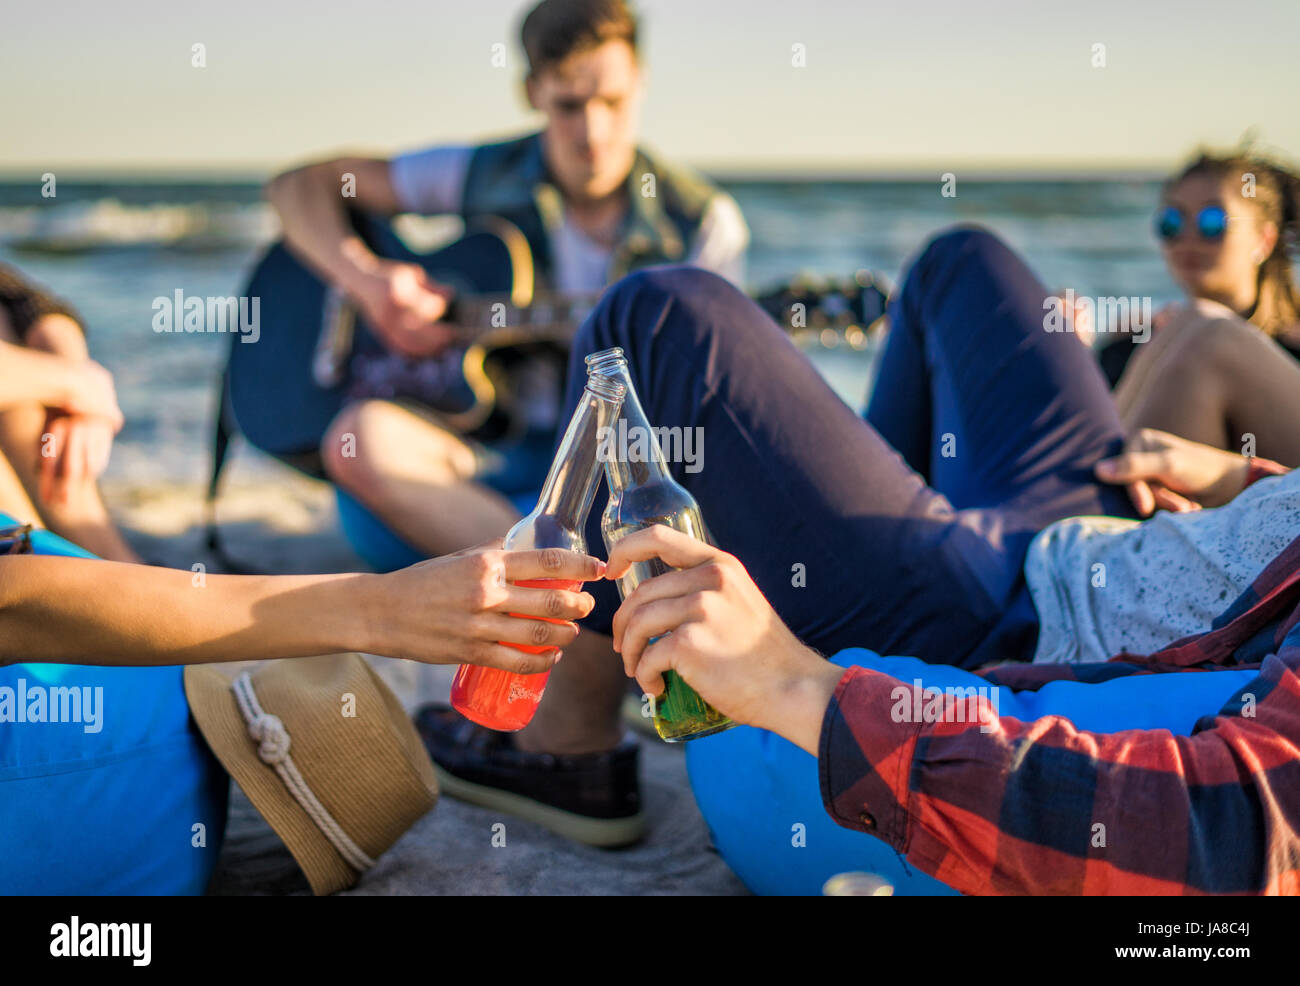 Closeup view of hands clinking glasses of beer bottles on the beach - Stock Image